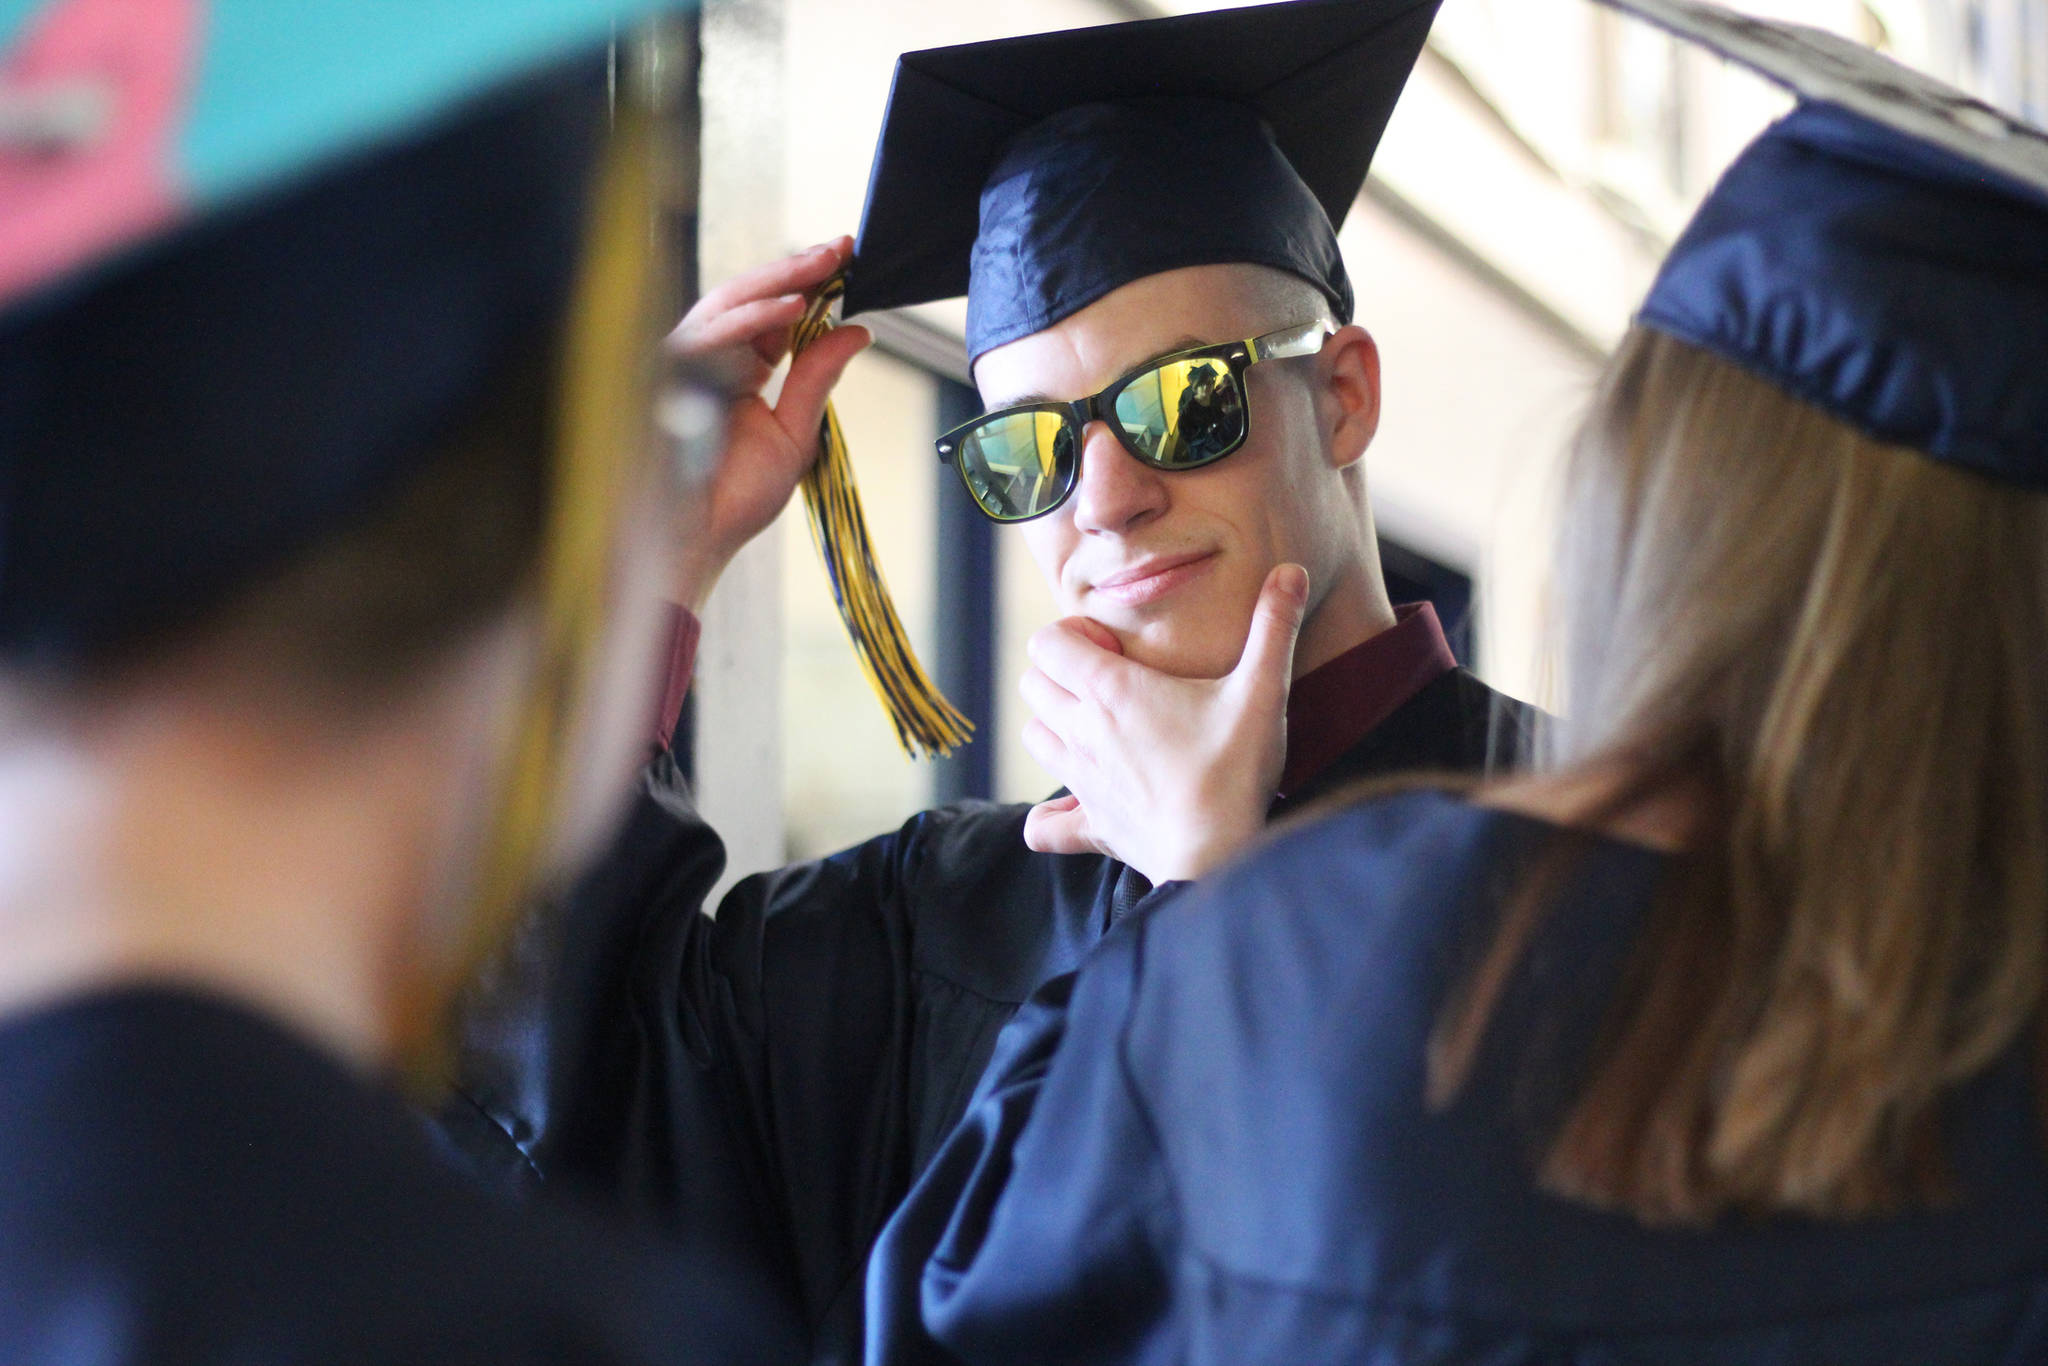 Isabella Koch helps Garrett Koch perfect the finishing touches before they walk in their graduation ceremony Tuesday, May 21, 2019 at Ninilchik School in Ninilchik, Alaska. They are two of four total Ninilchik graduates this year. (Photo by Megan Pacer/Homer News)